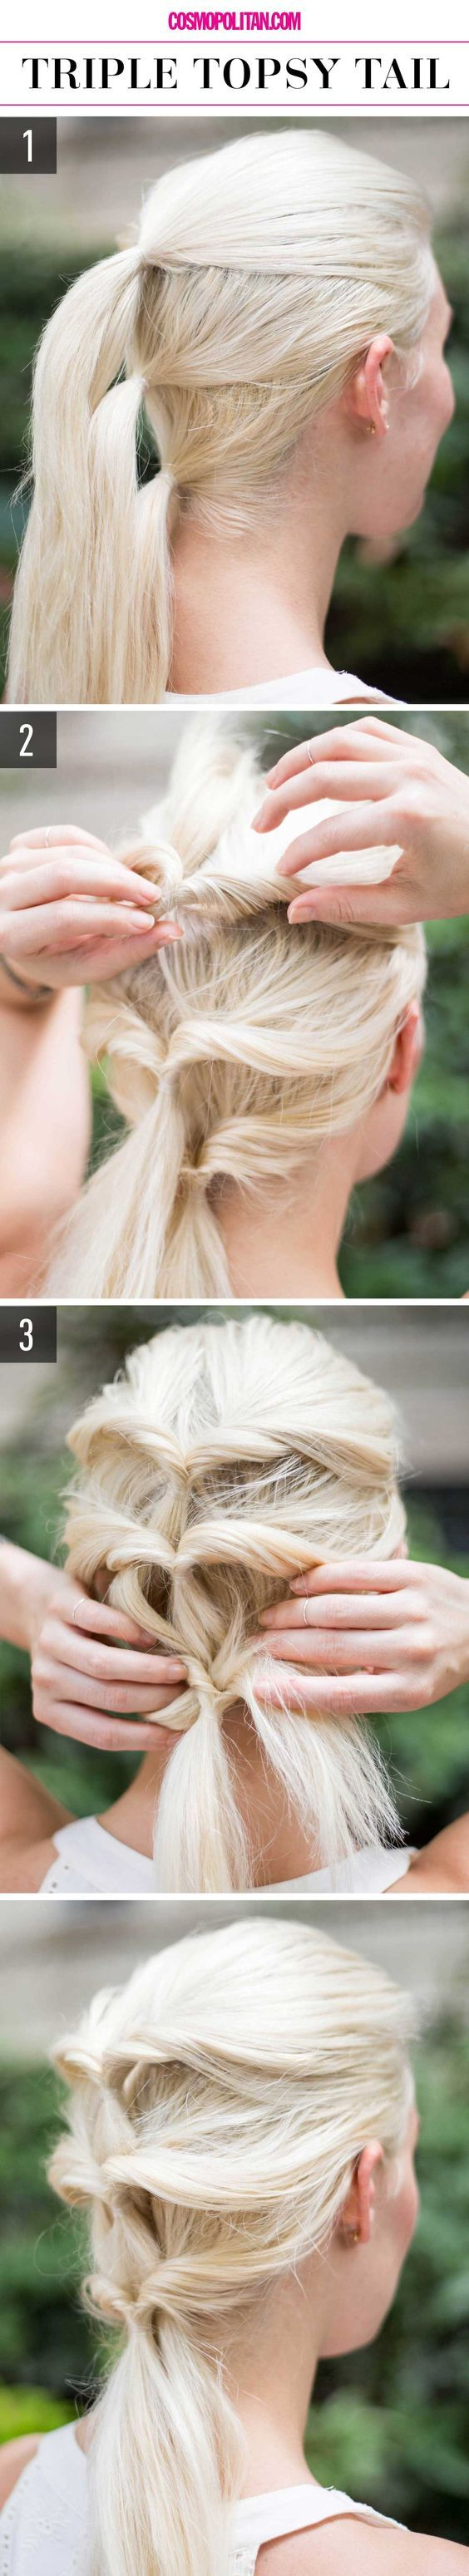 easy hair styles for hair 25 best ideas about lazy hairstyles on 1635